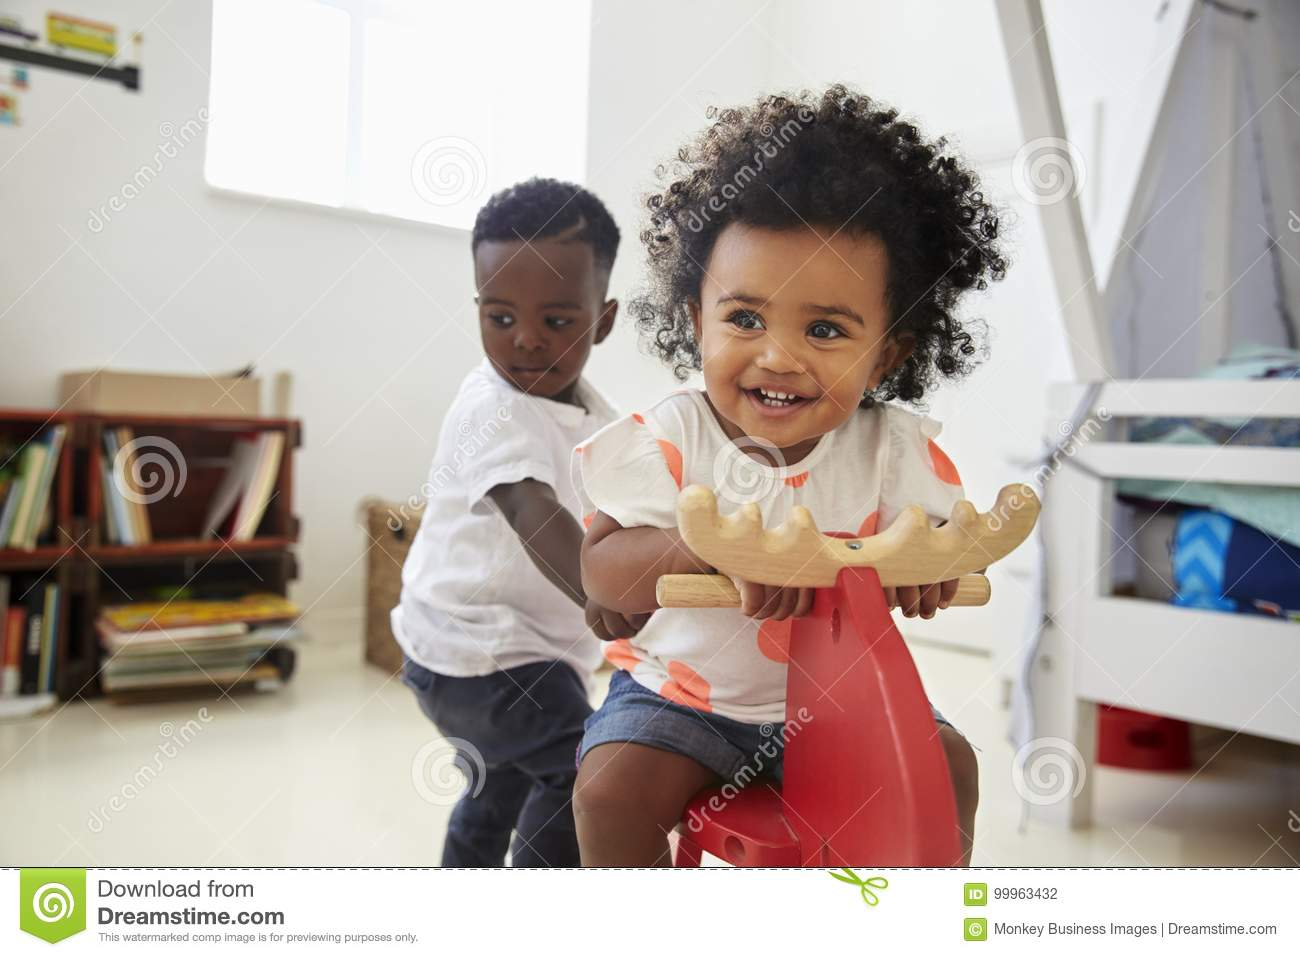 Two Children Sitting On Ride On Toy In Playroom